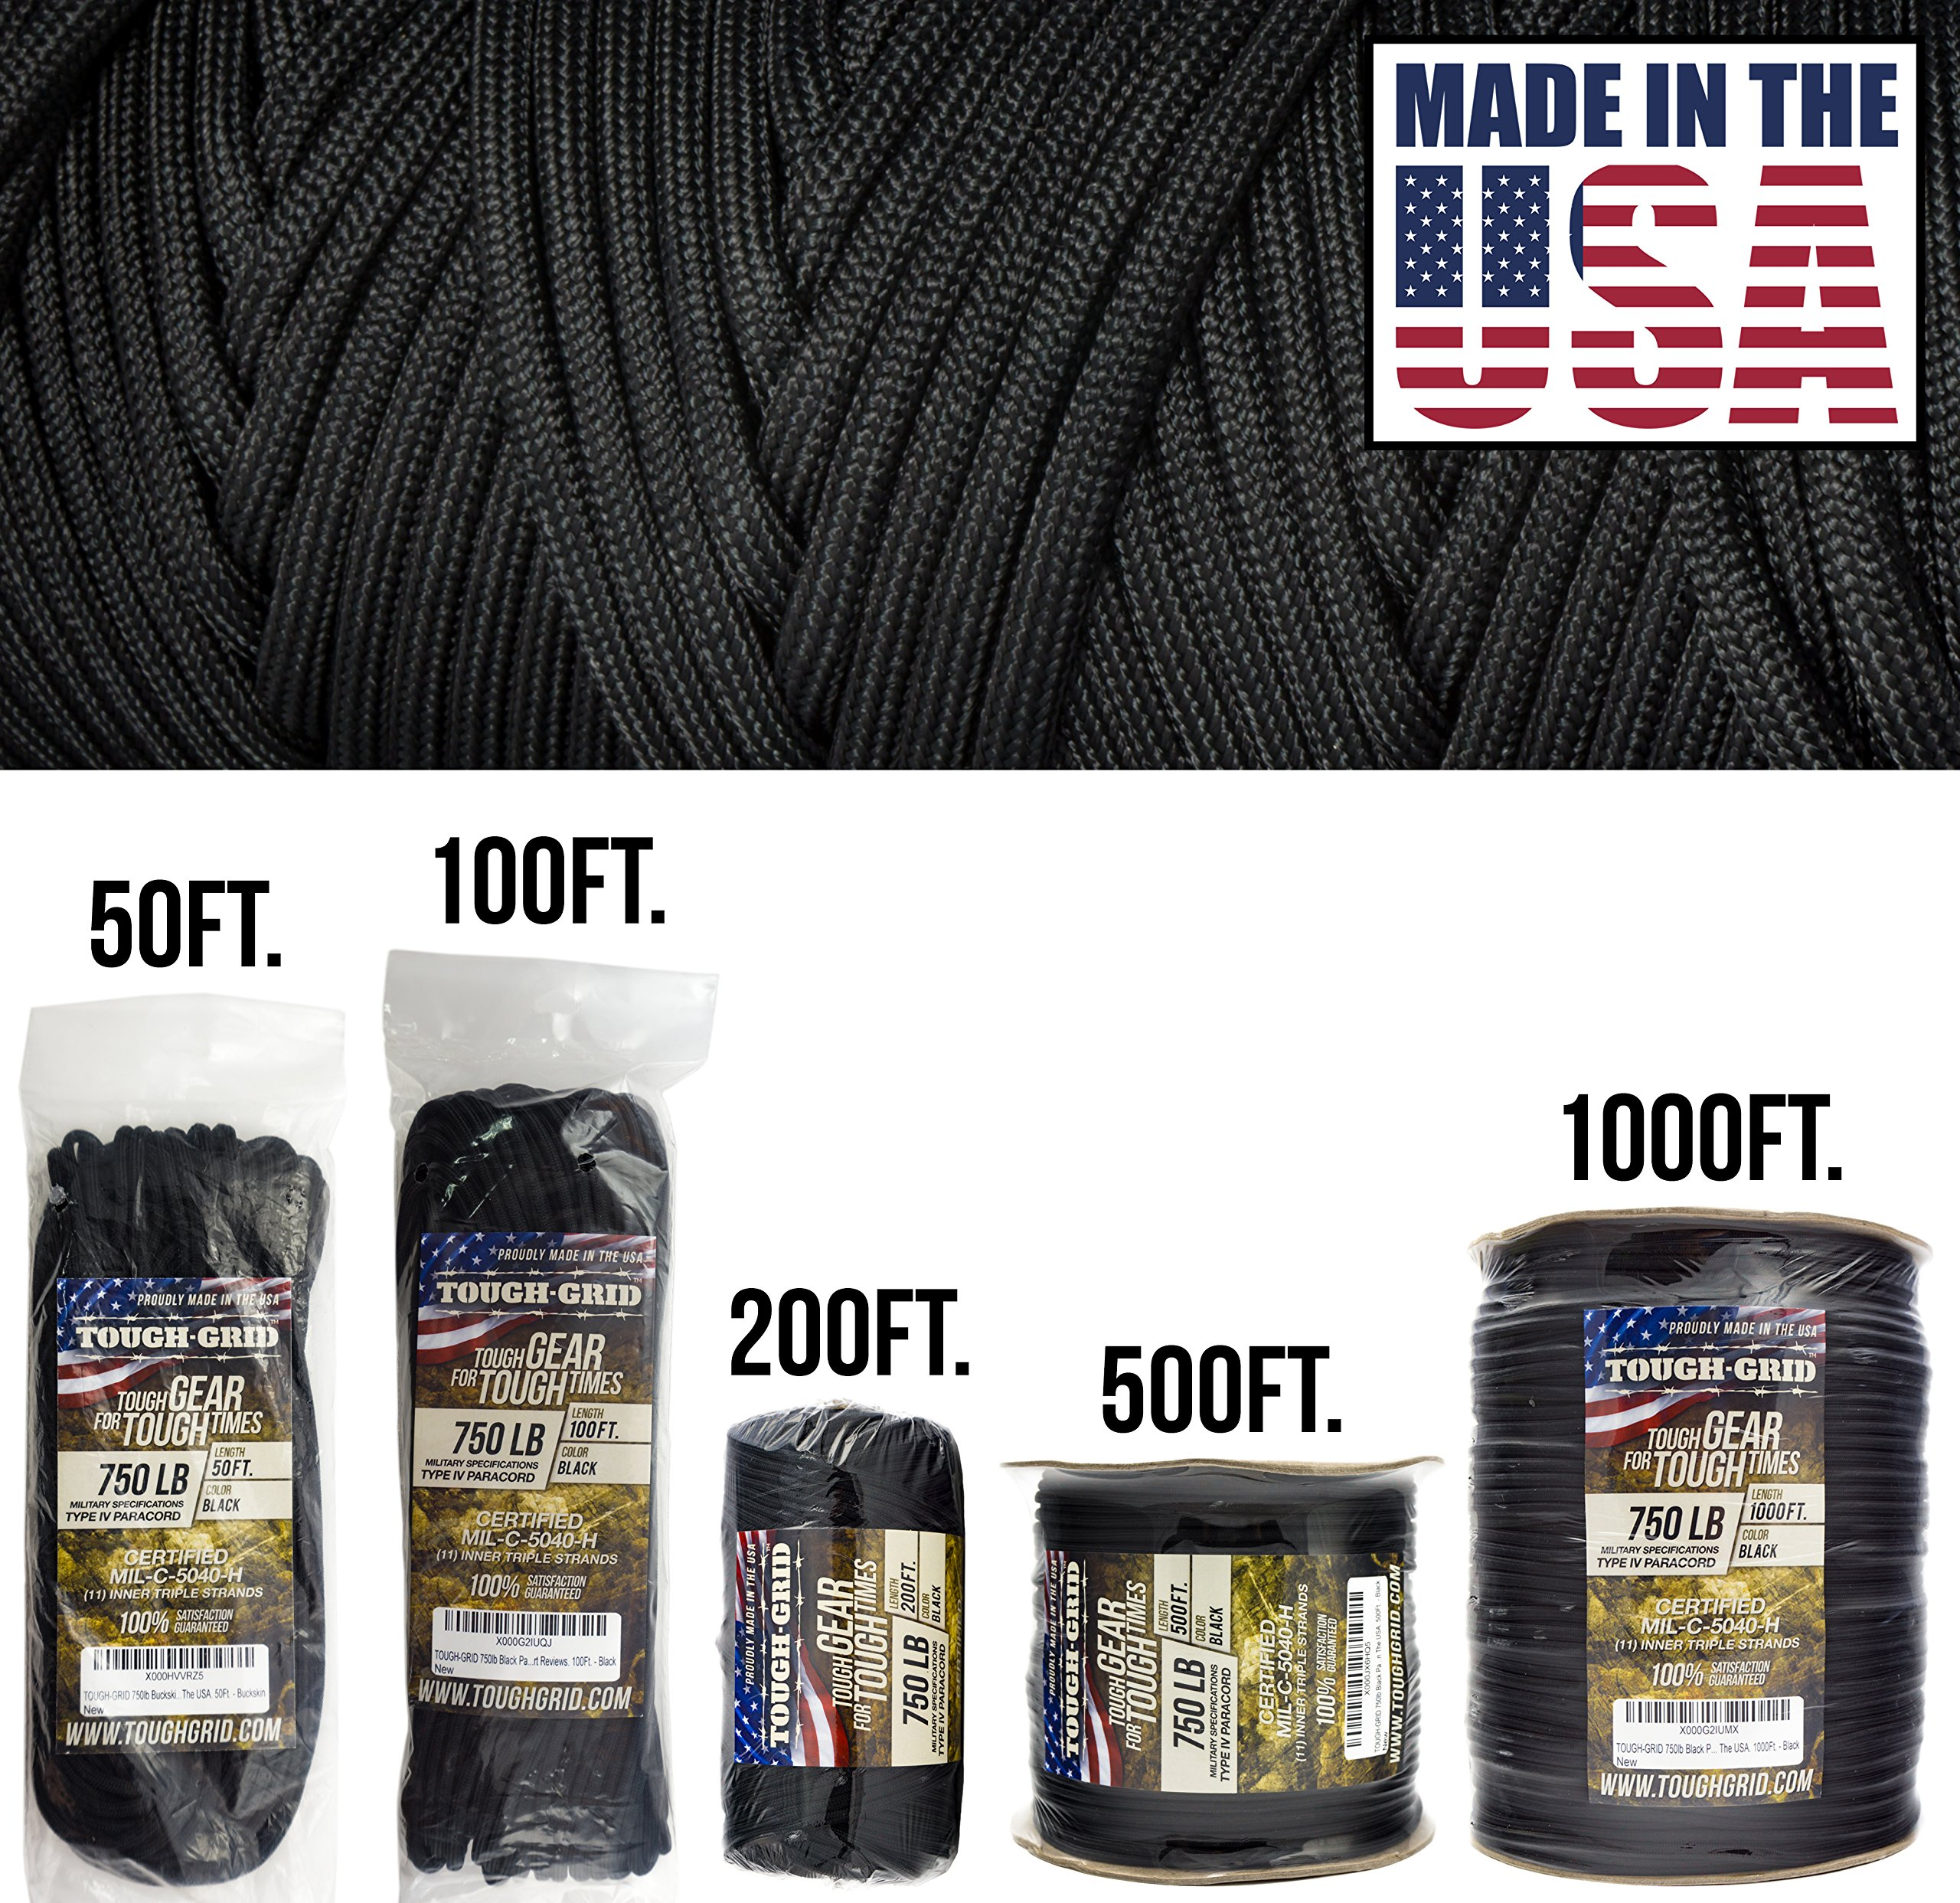 TOUGH-GRID 750lb Black Paracord/Parachute Cord - Genuine Mil Spec Type IV 750lb Paracord Used by The US Military (MIl-C-5040-H) - 100% Nylon - Made in The USA. 1000Ft. - Black by TOUGH-GRID